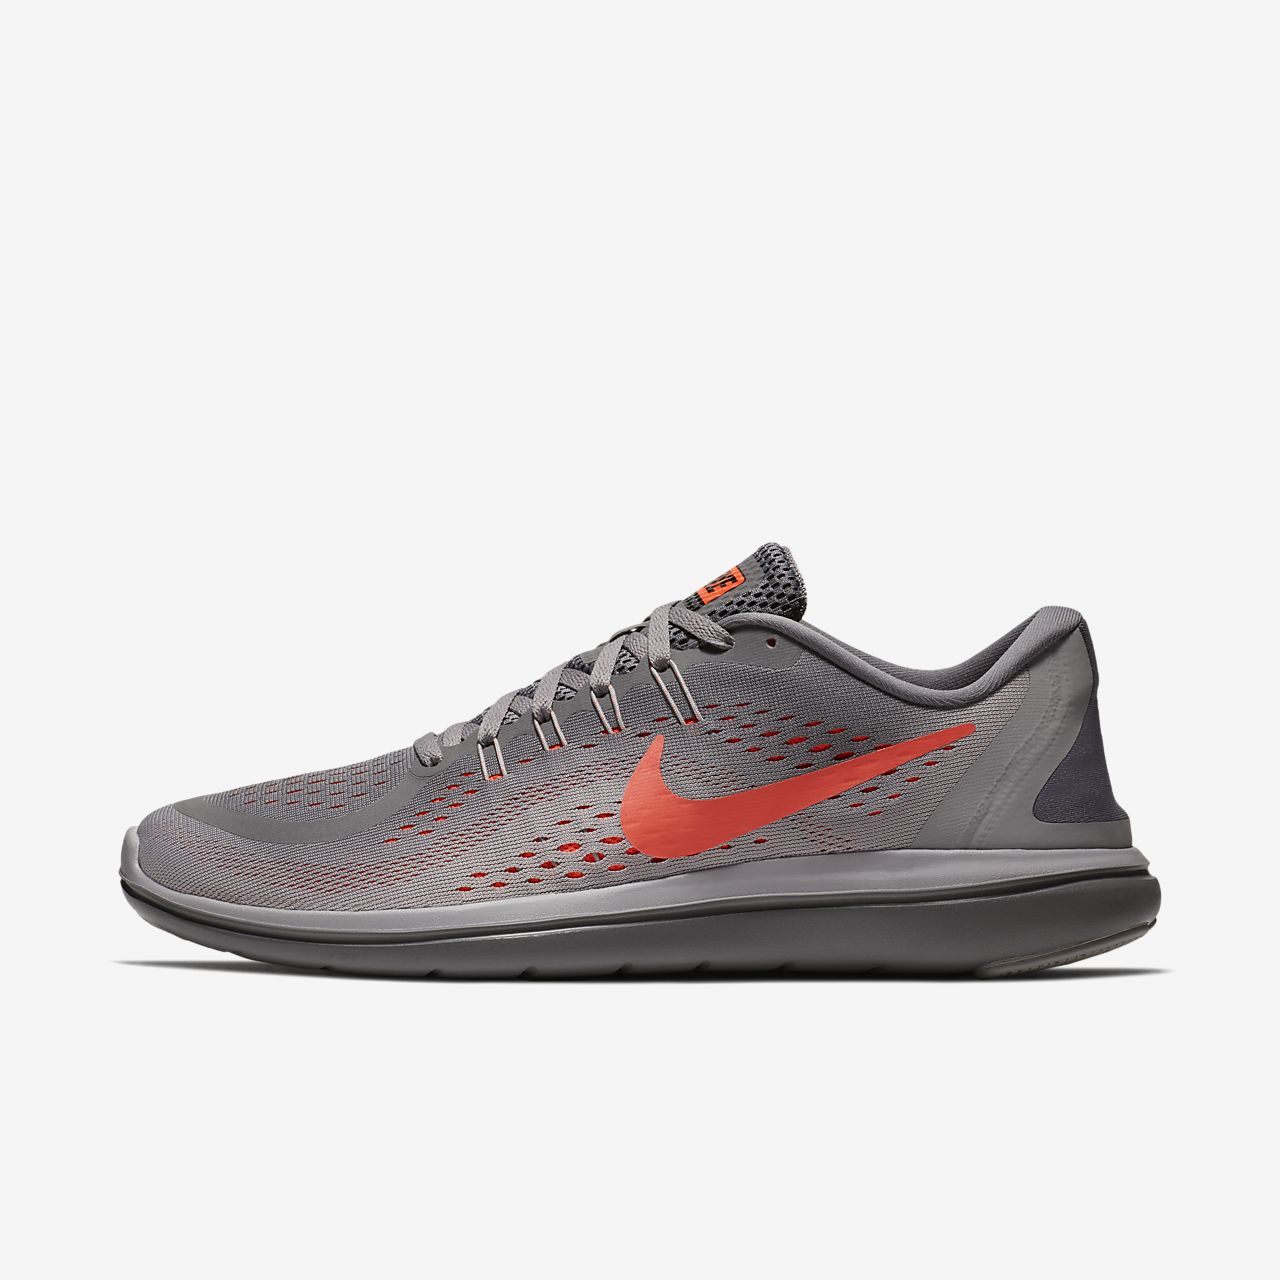 Nike Men Shoes   Buy Nike Shoes   Sneakers - Bluelilyandblue.com b54ba42f74